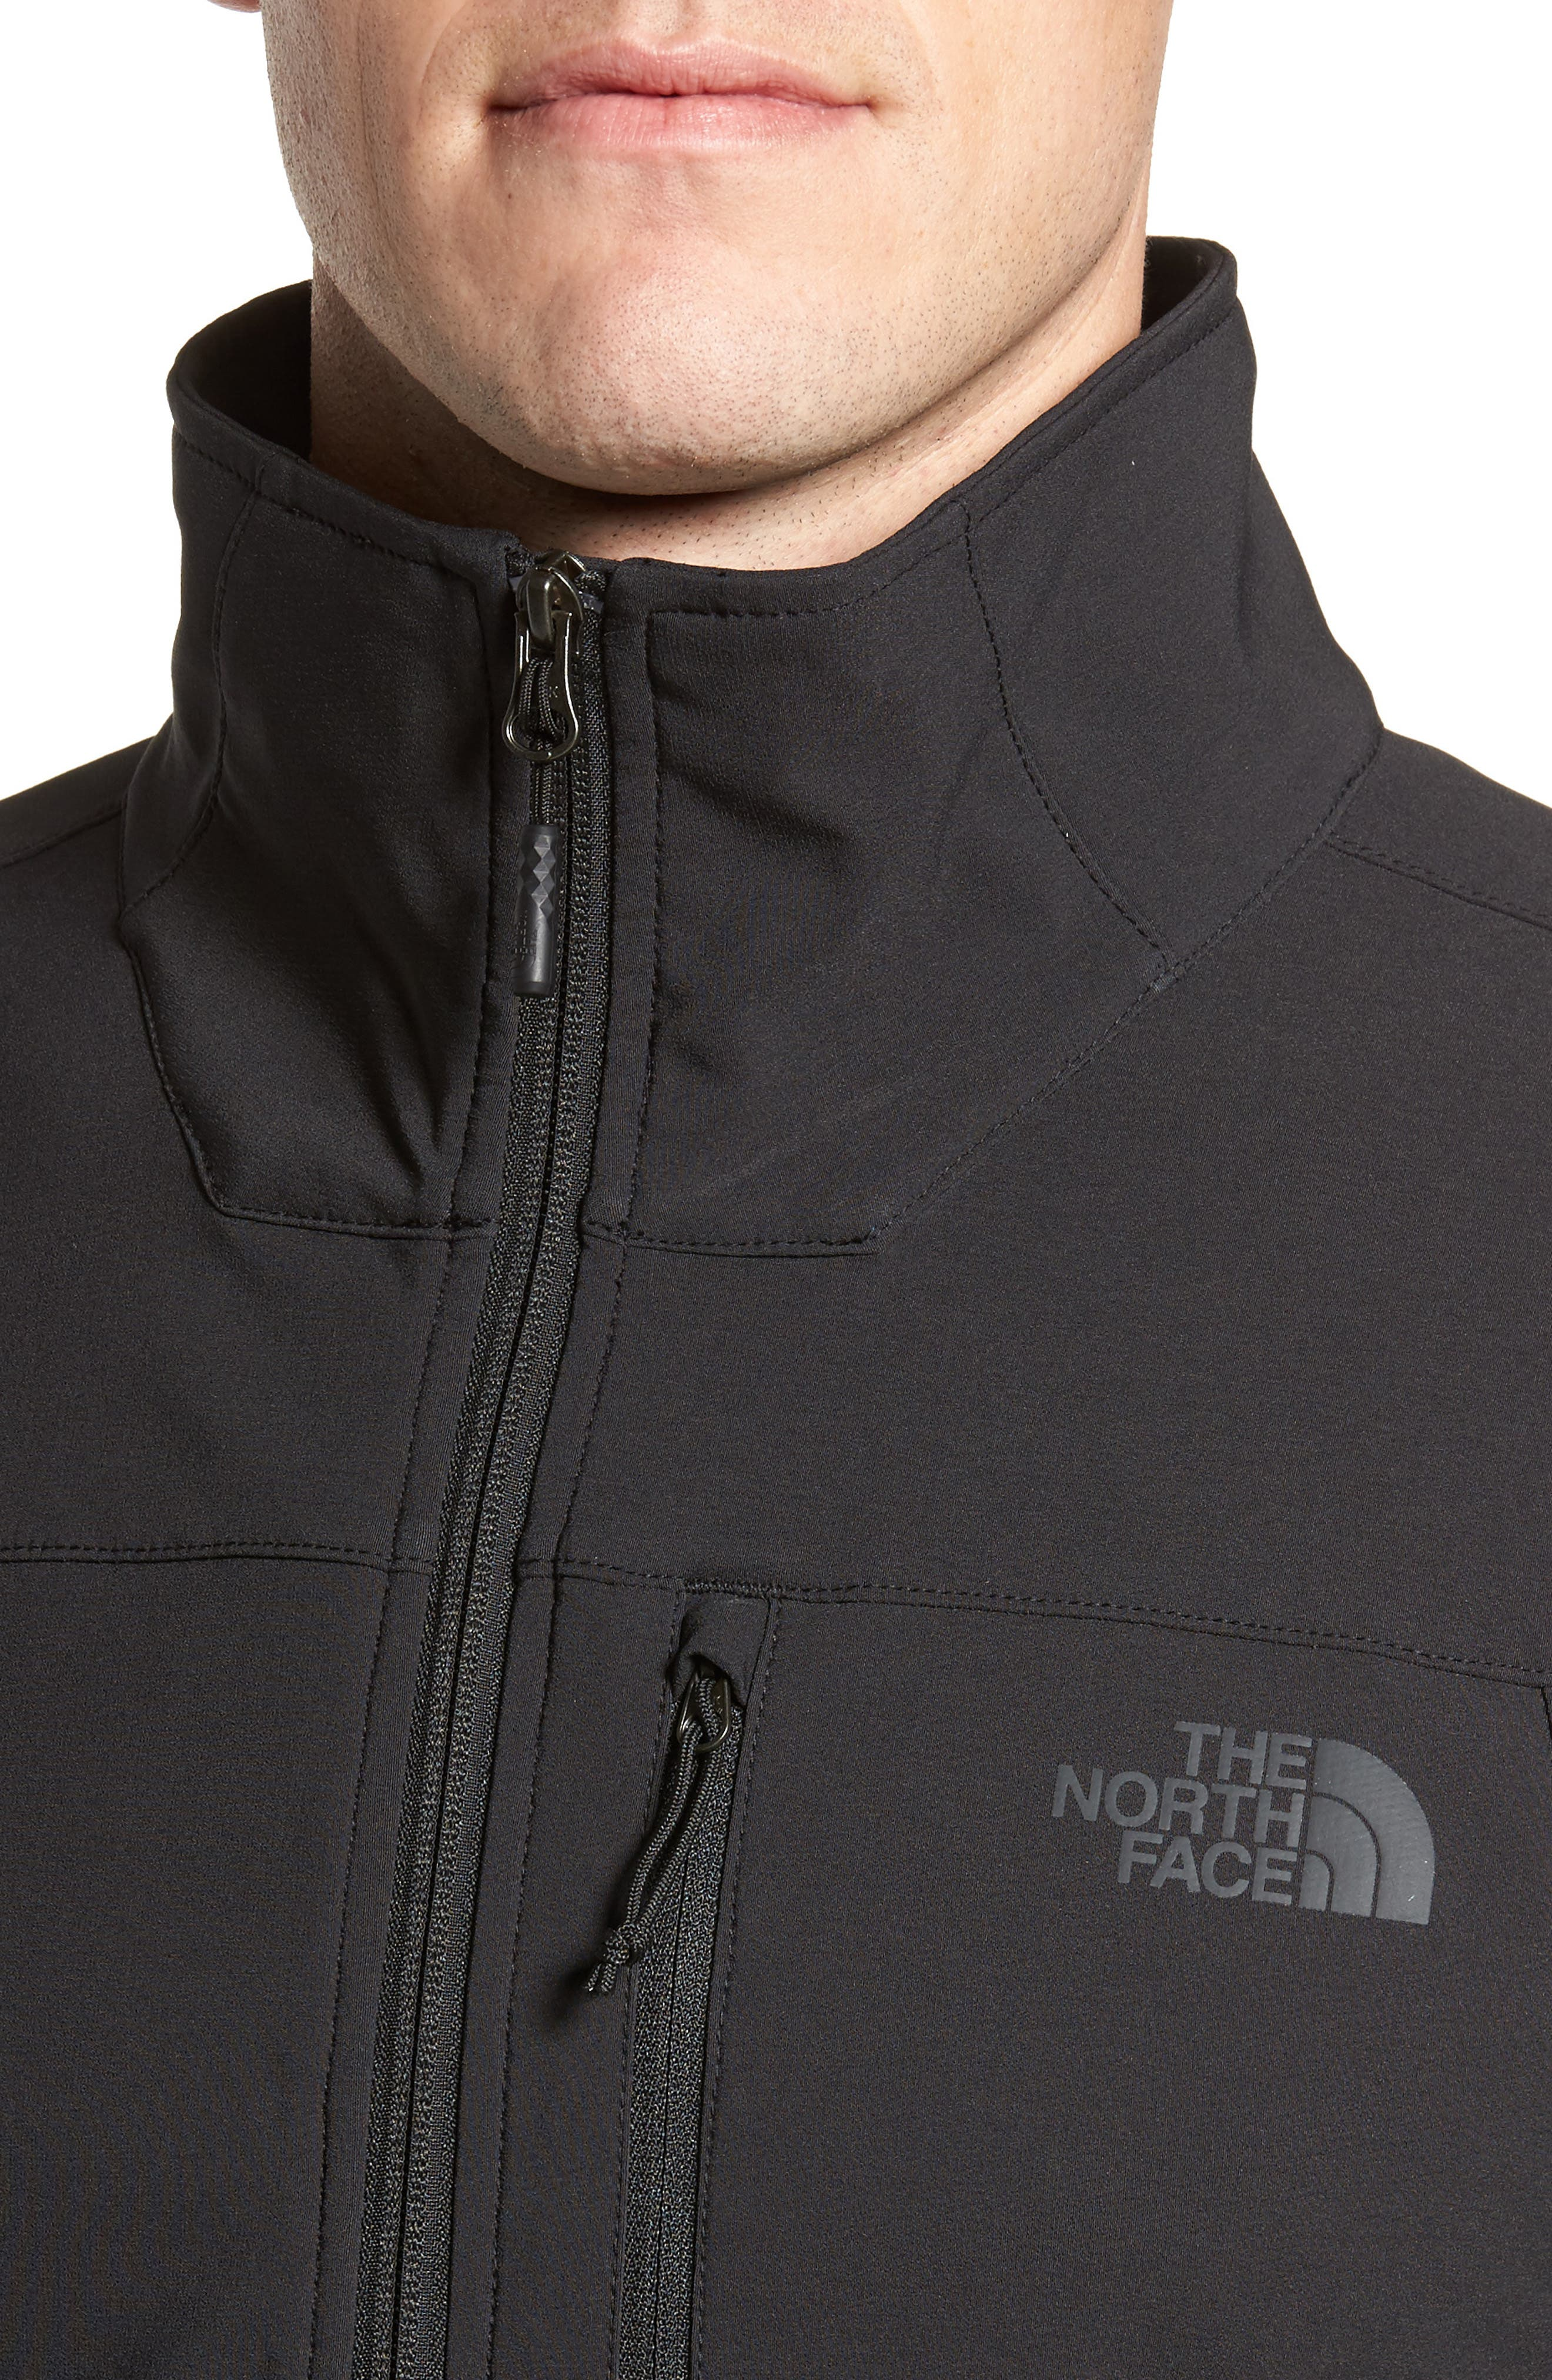 Apex Nimble Jacket,                             Alternate thumbnail 4, color,                             BLACK/ BLACK